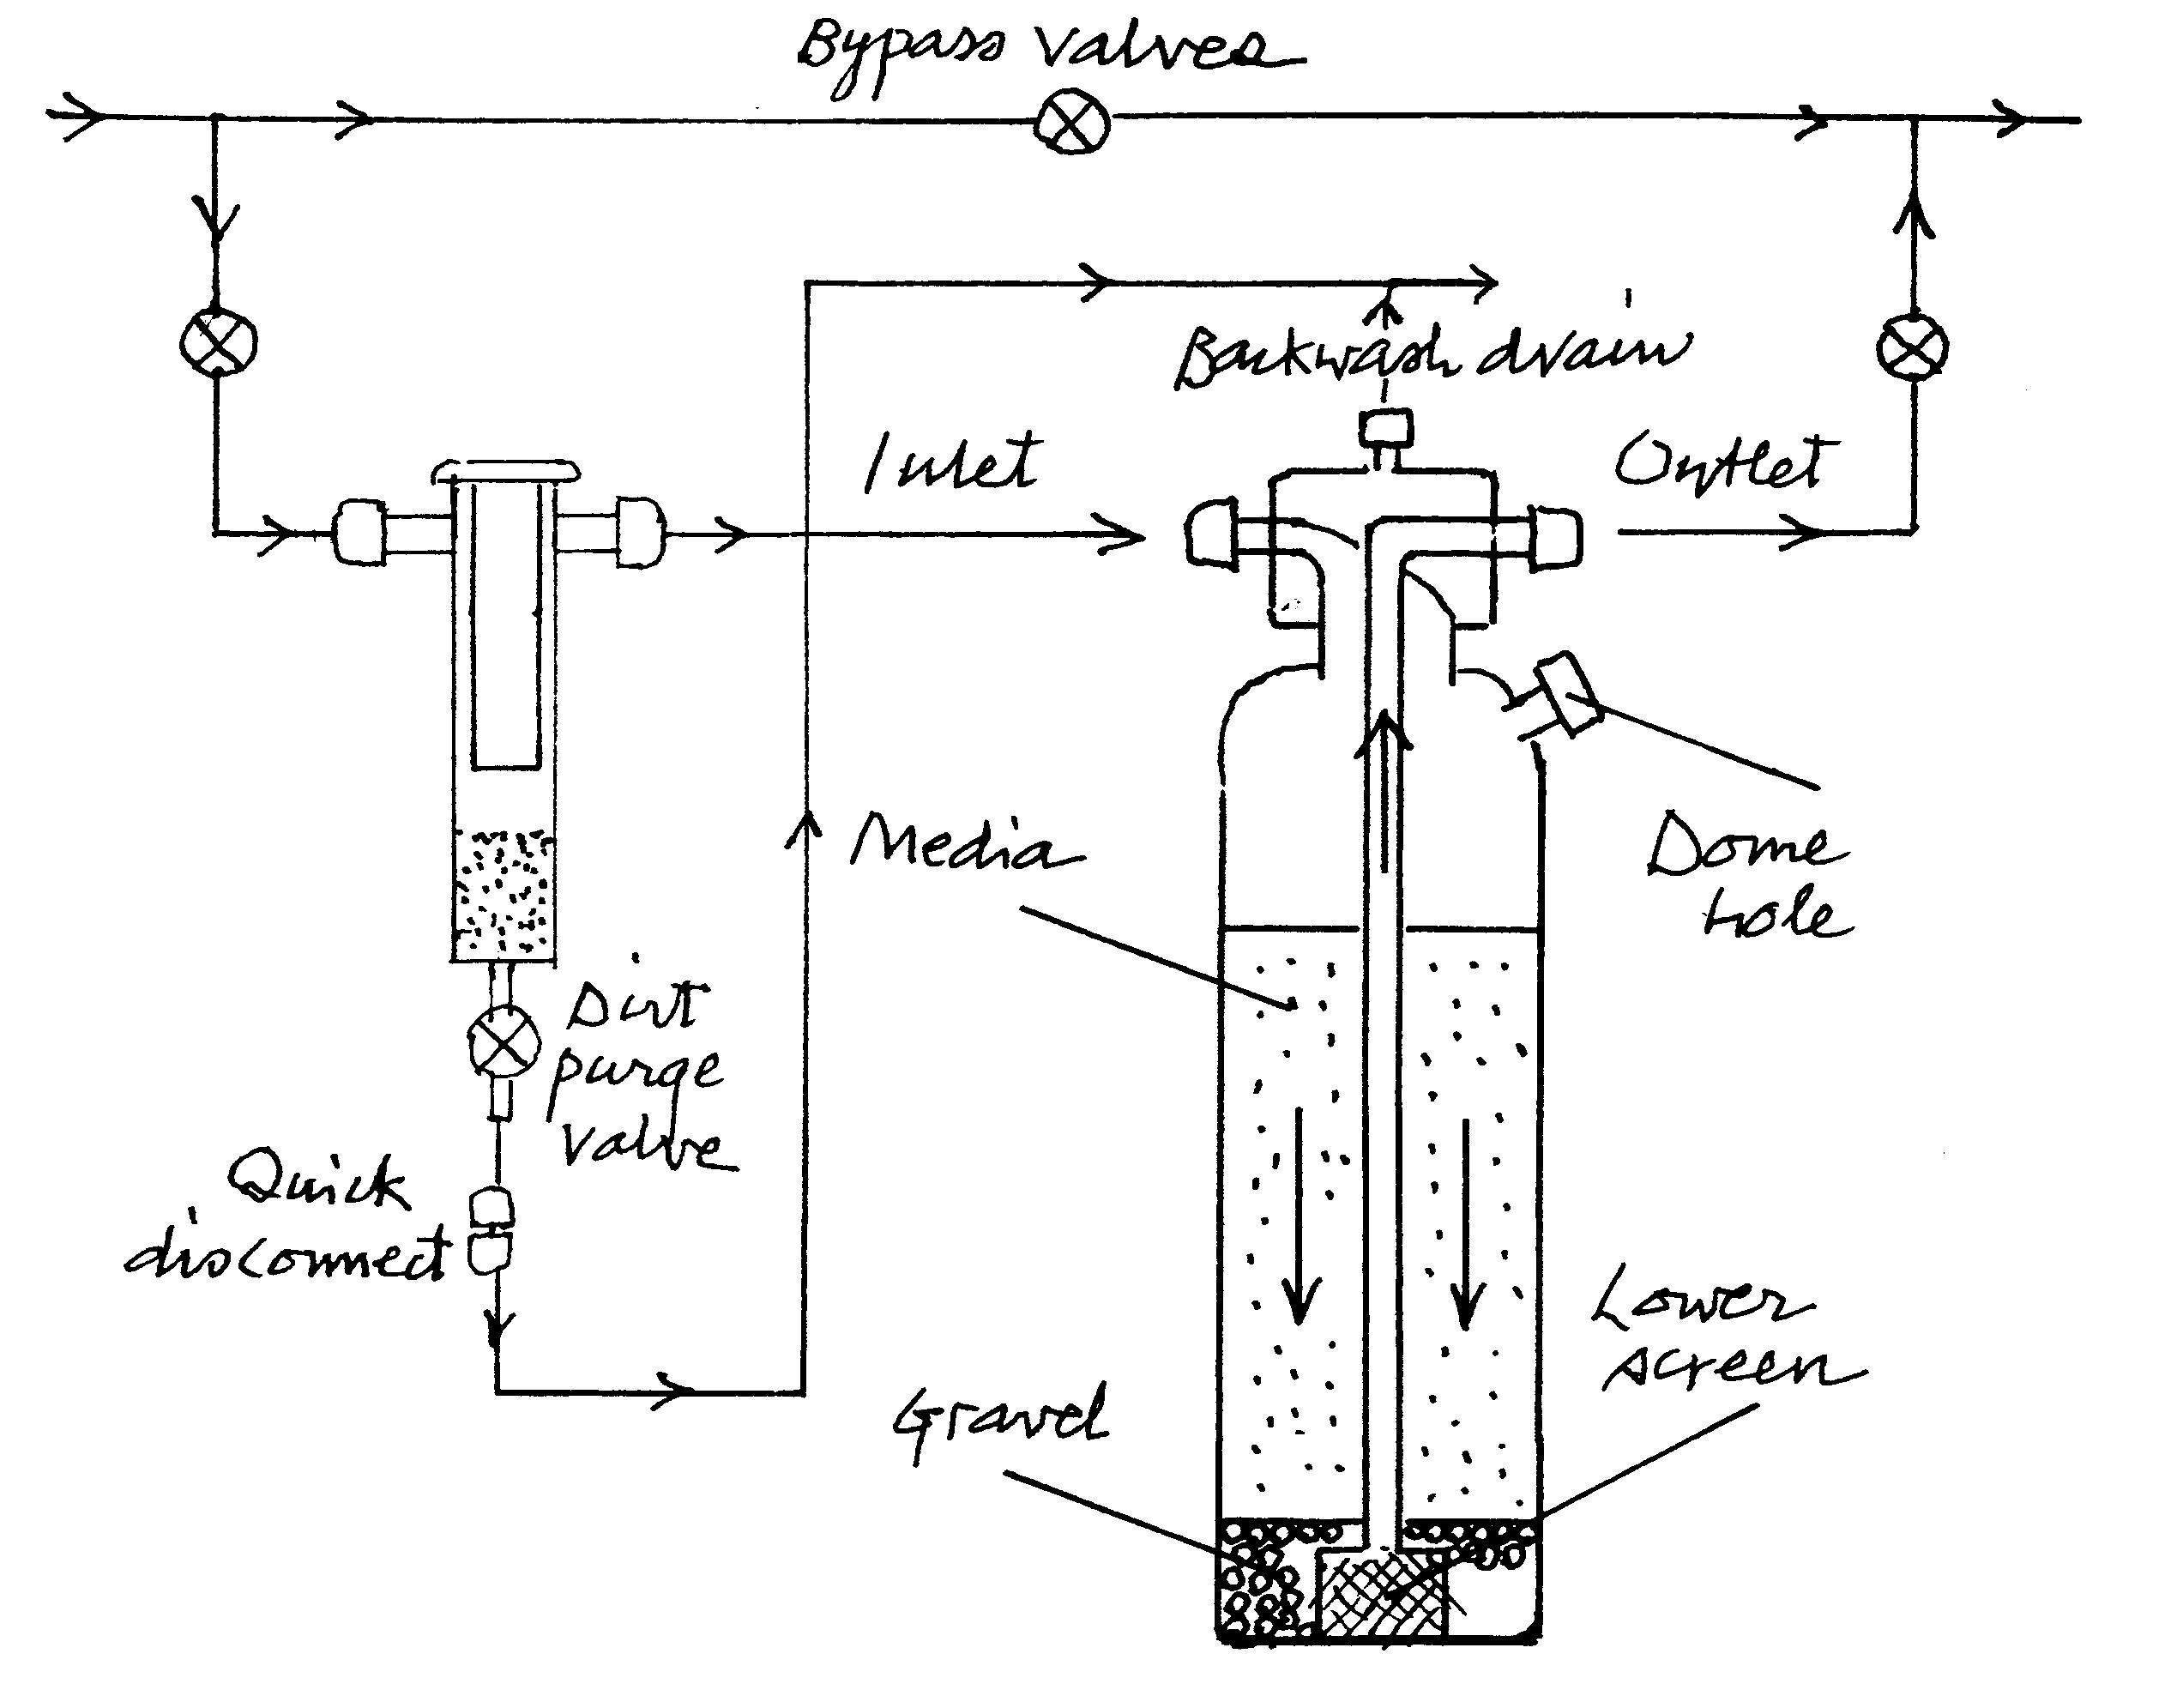 water softeners how they work diagram amana clothes dryer wiring softening system schematic get free image about